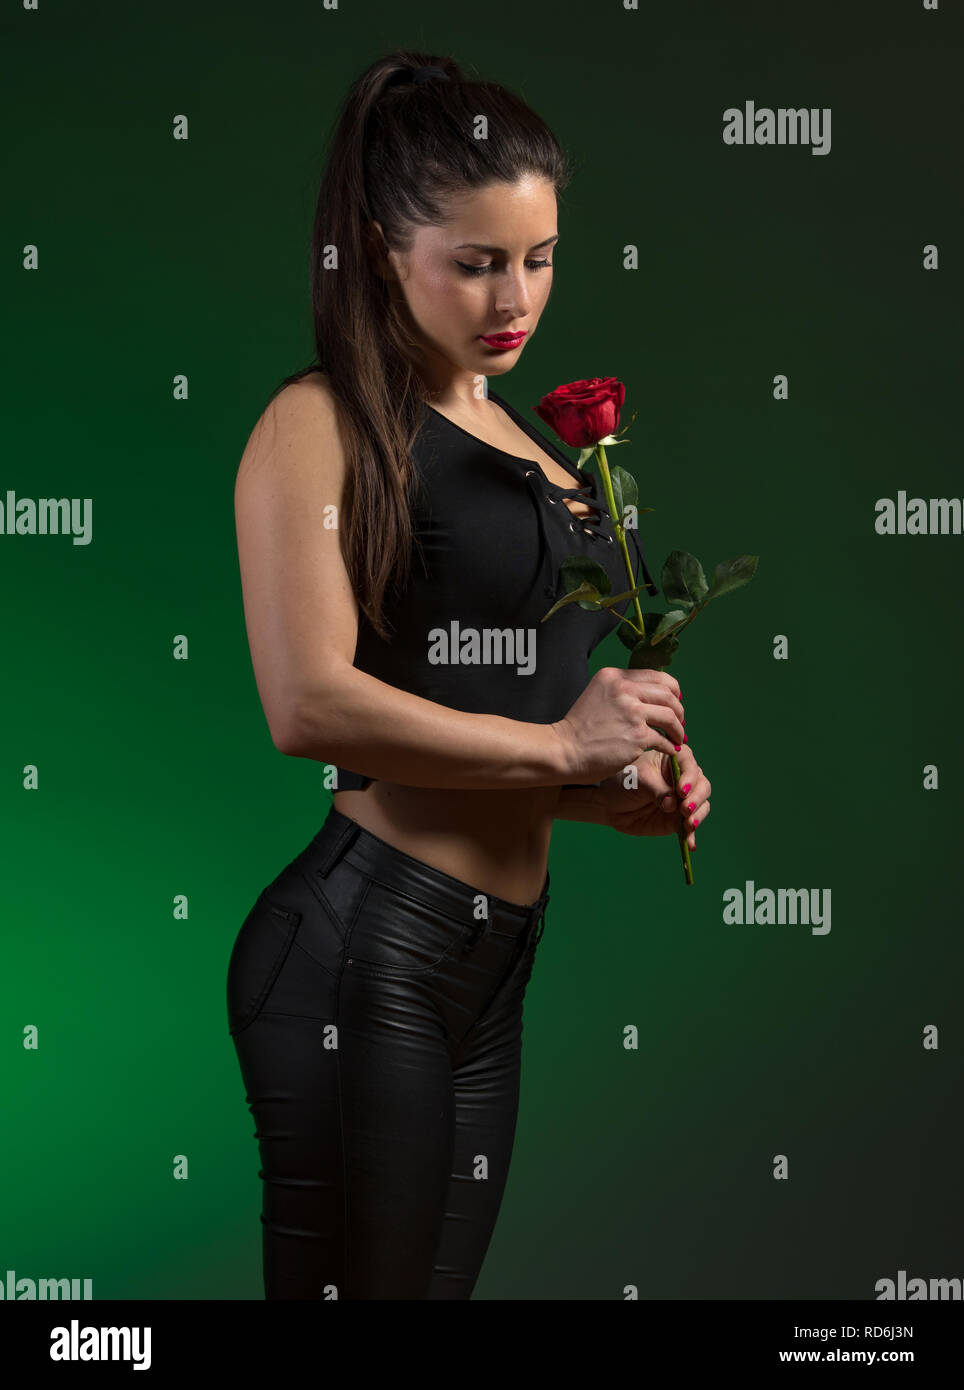 young woman in black outfit holding red rose Stock Photo